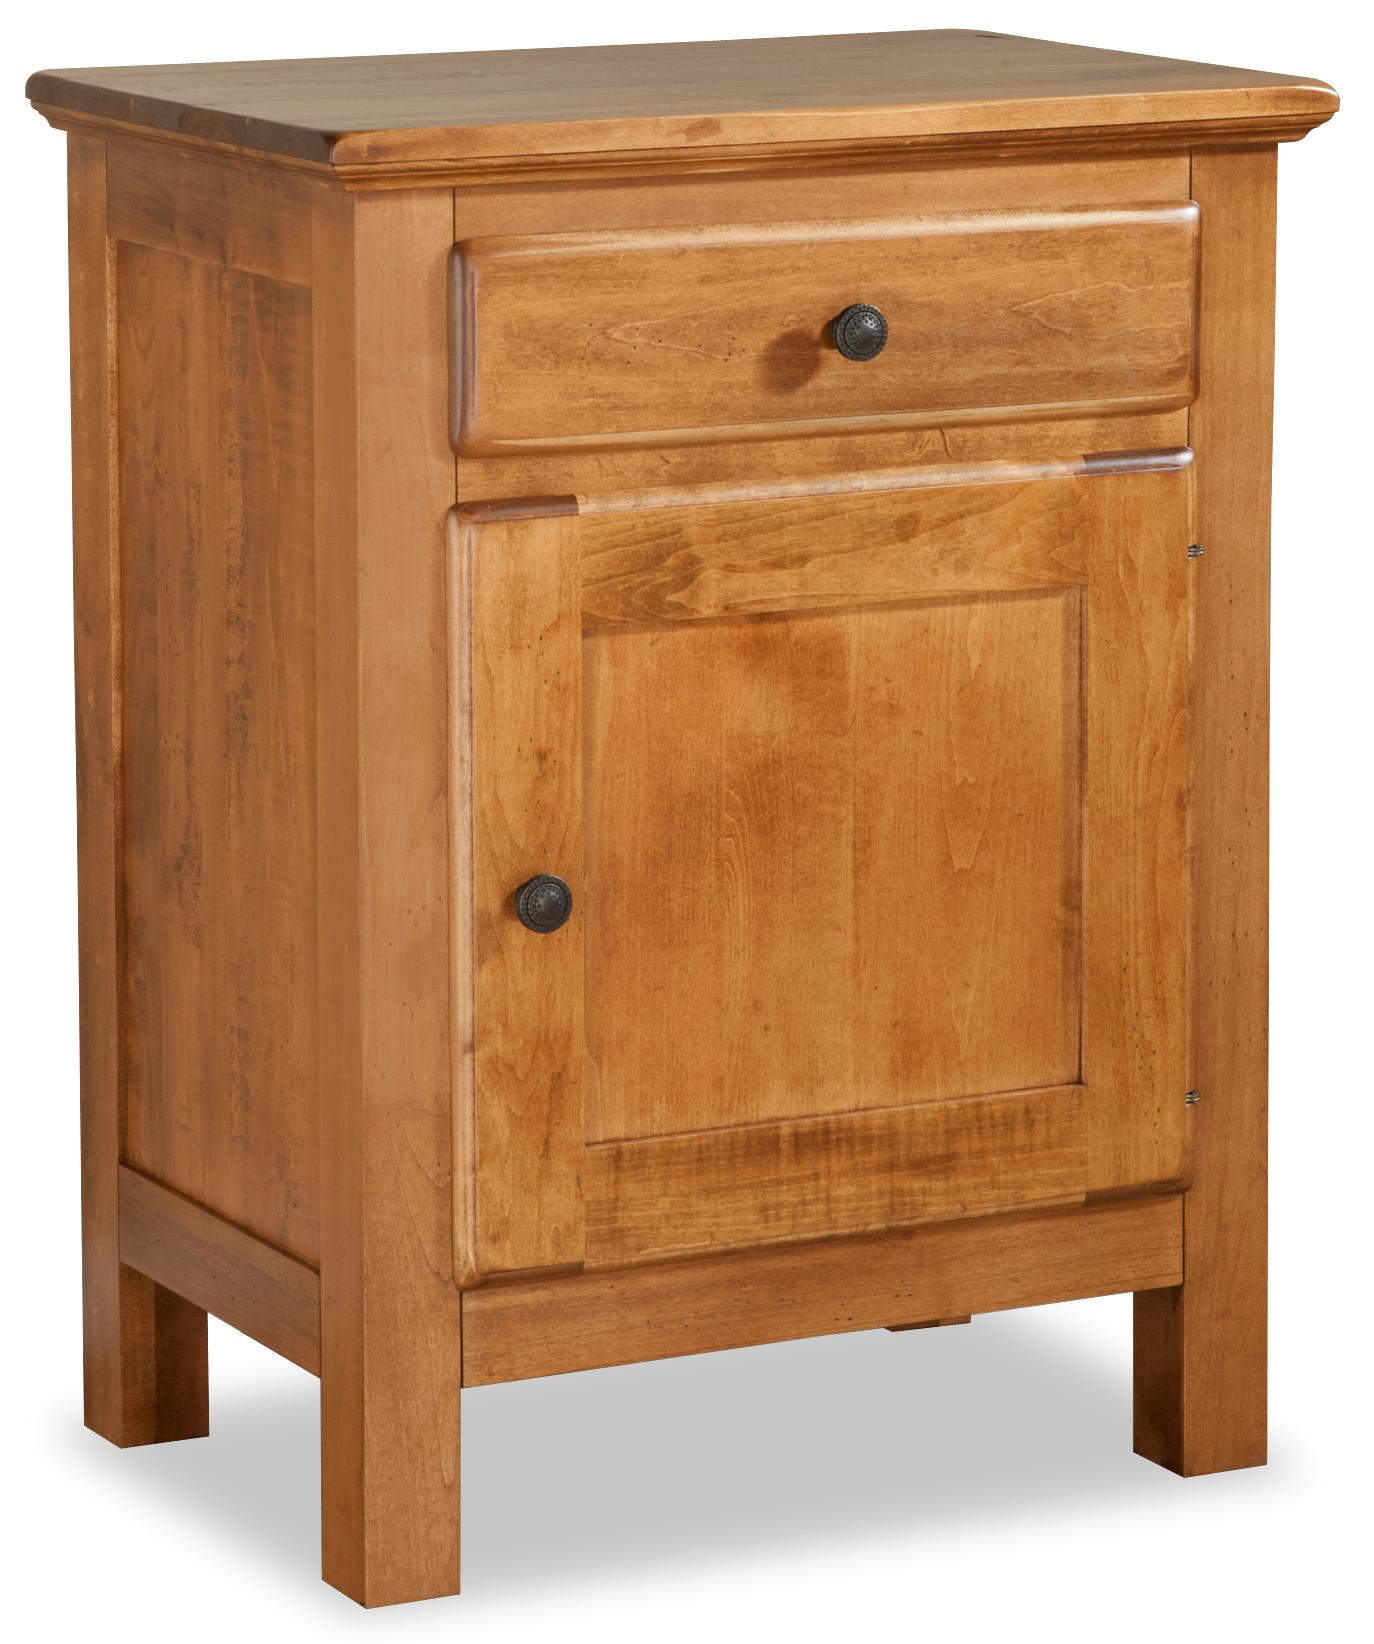 Lewiston Nightstand by Daniel's Amish at Saugerties Furniture Mart